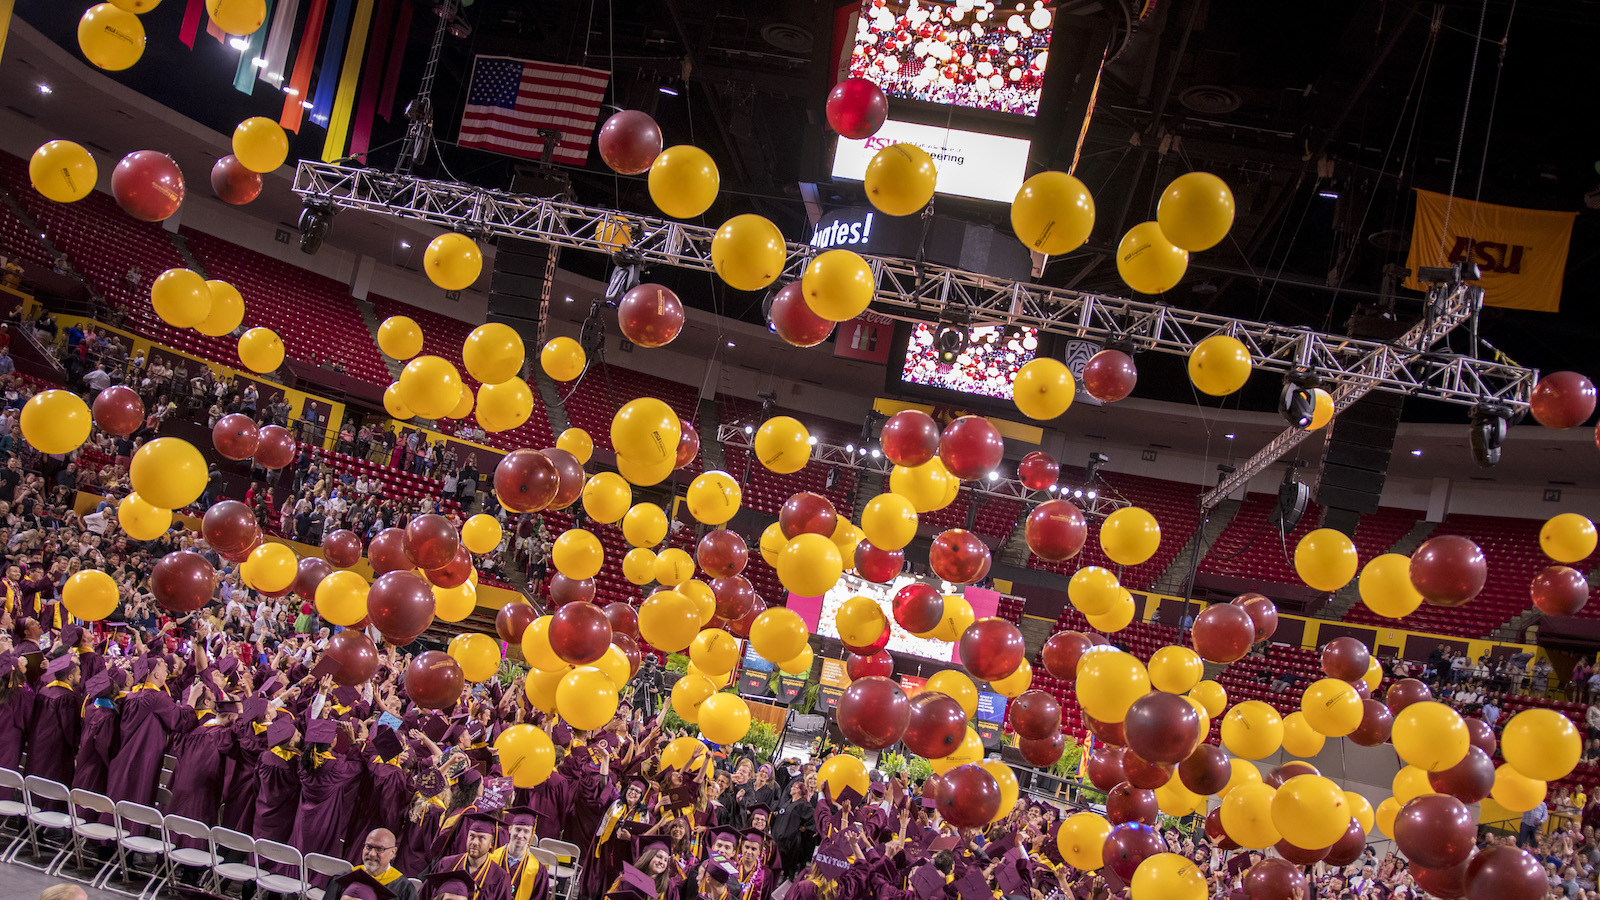 ballons falling from ceilng during convocation